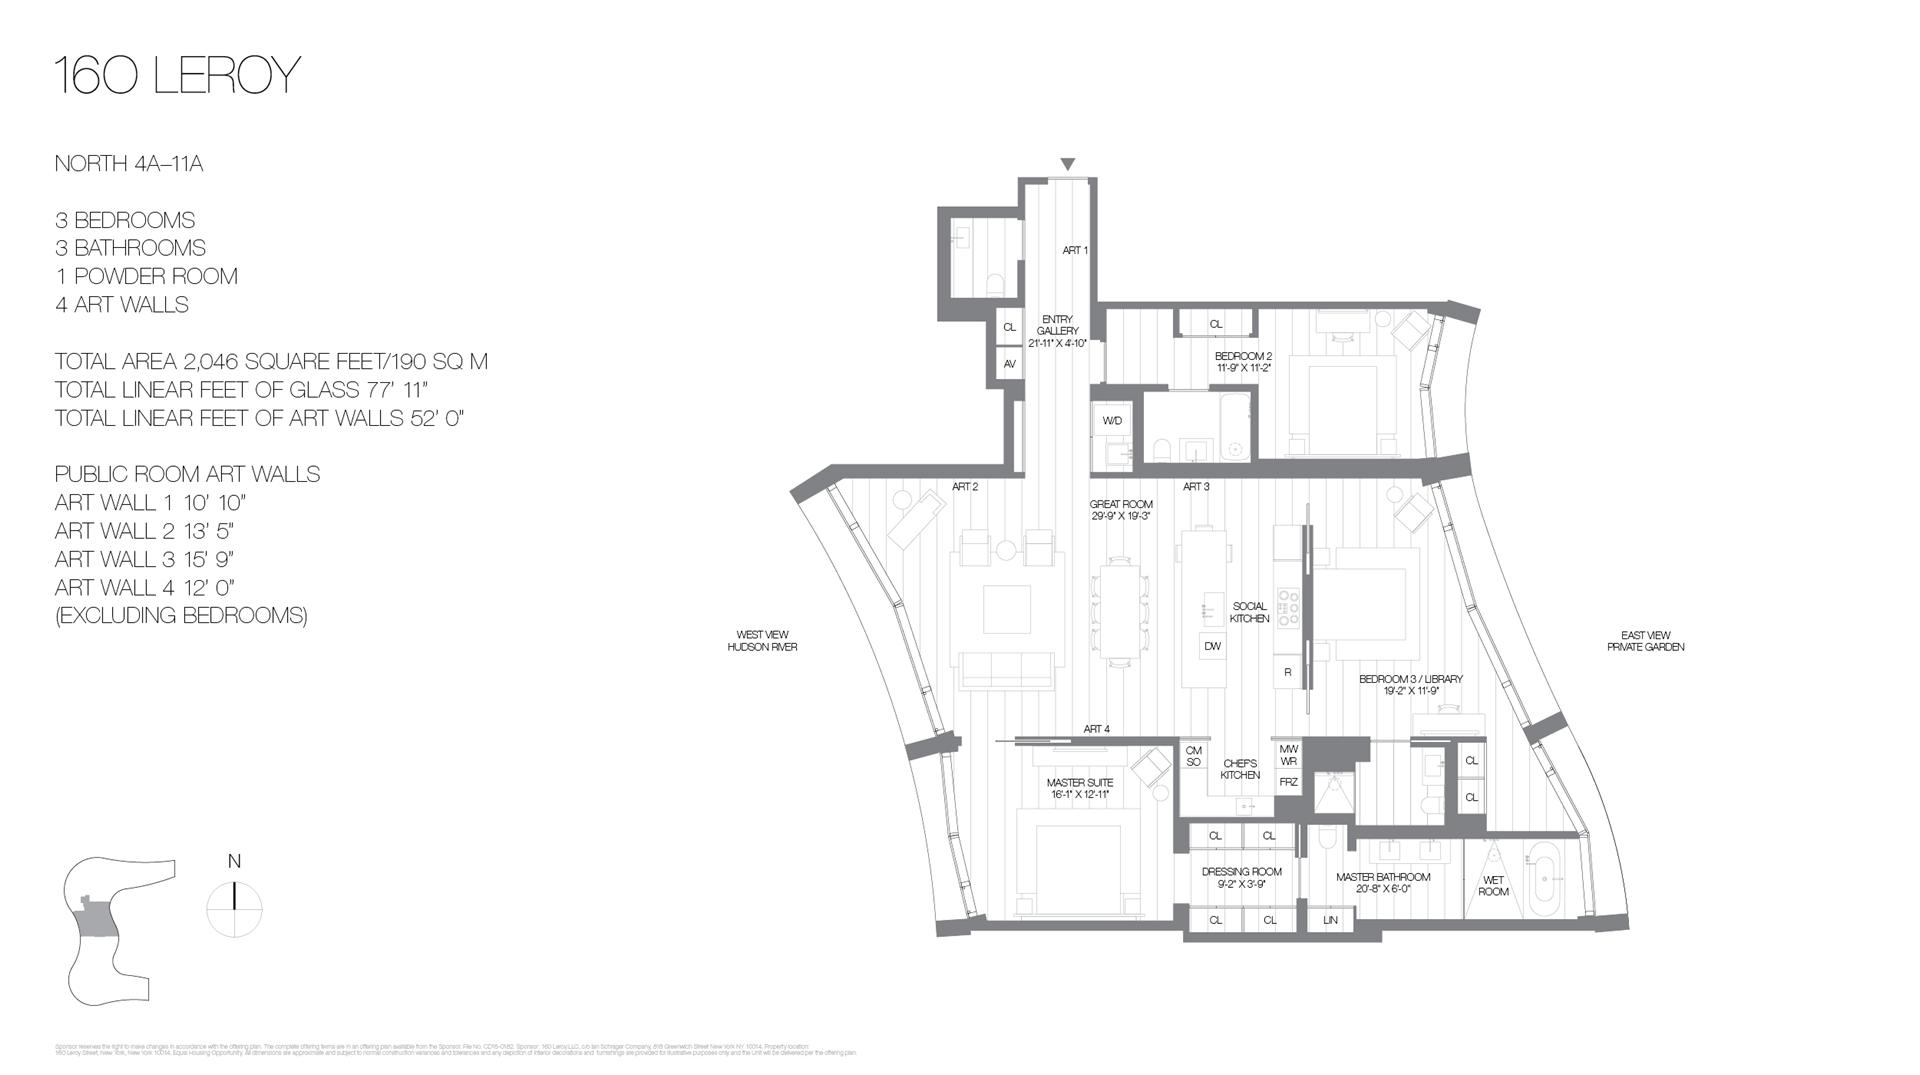 Floor plan of 160 Leroy St, NORTH11A - West Village - Meatpacking District, New York